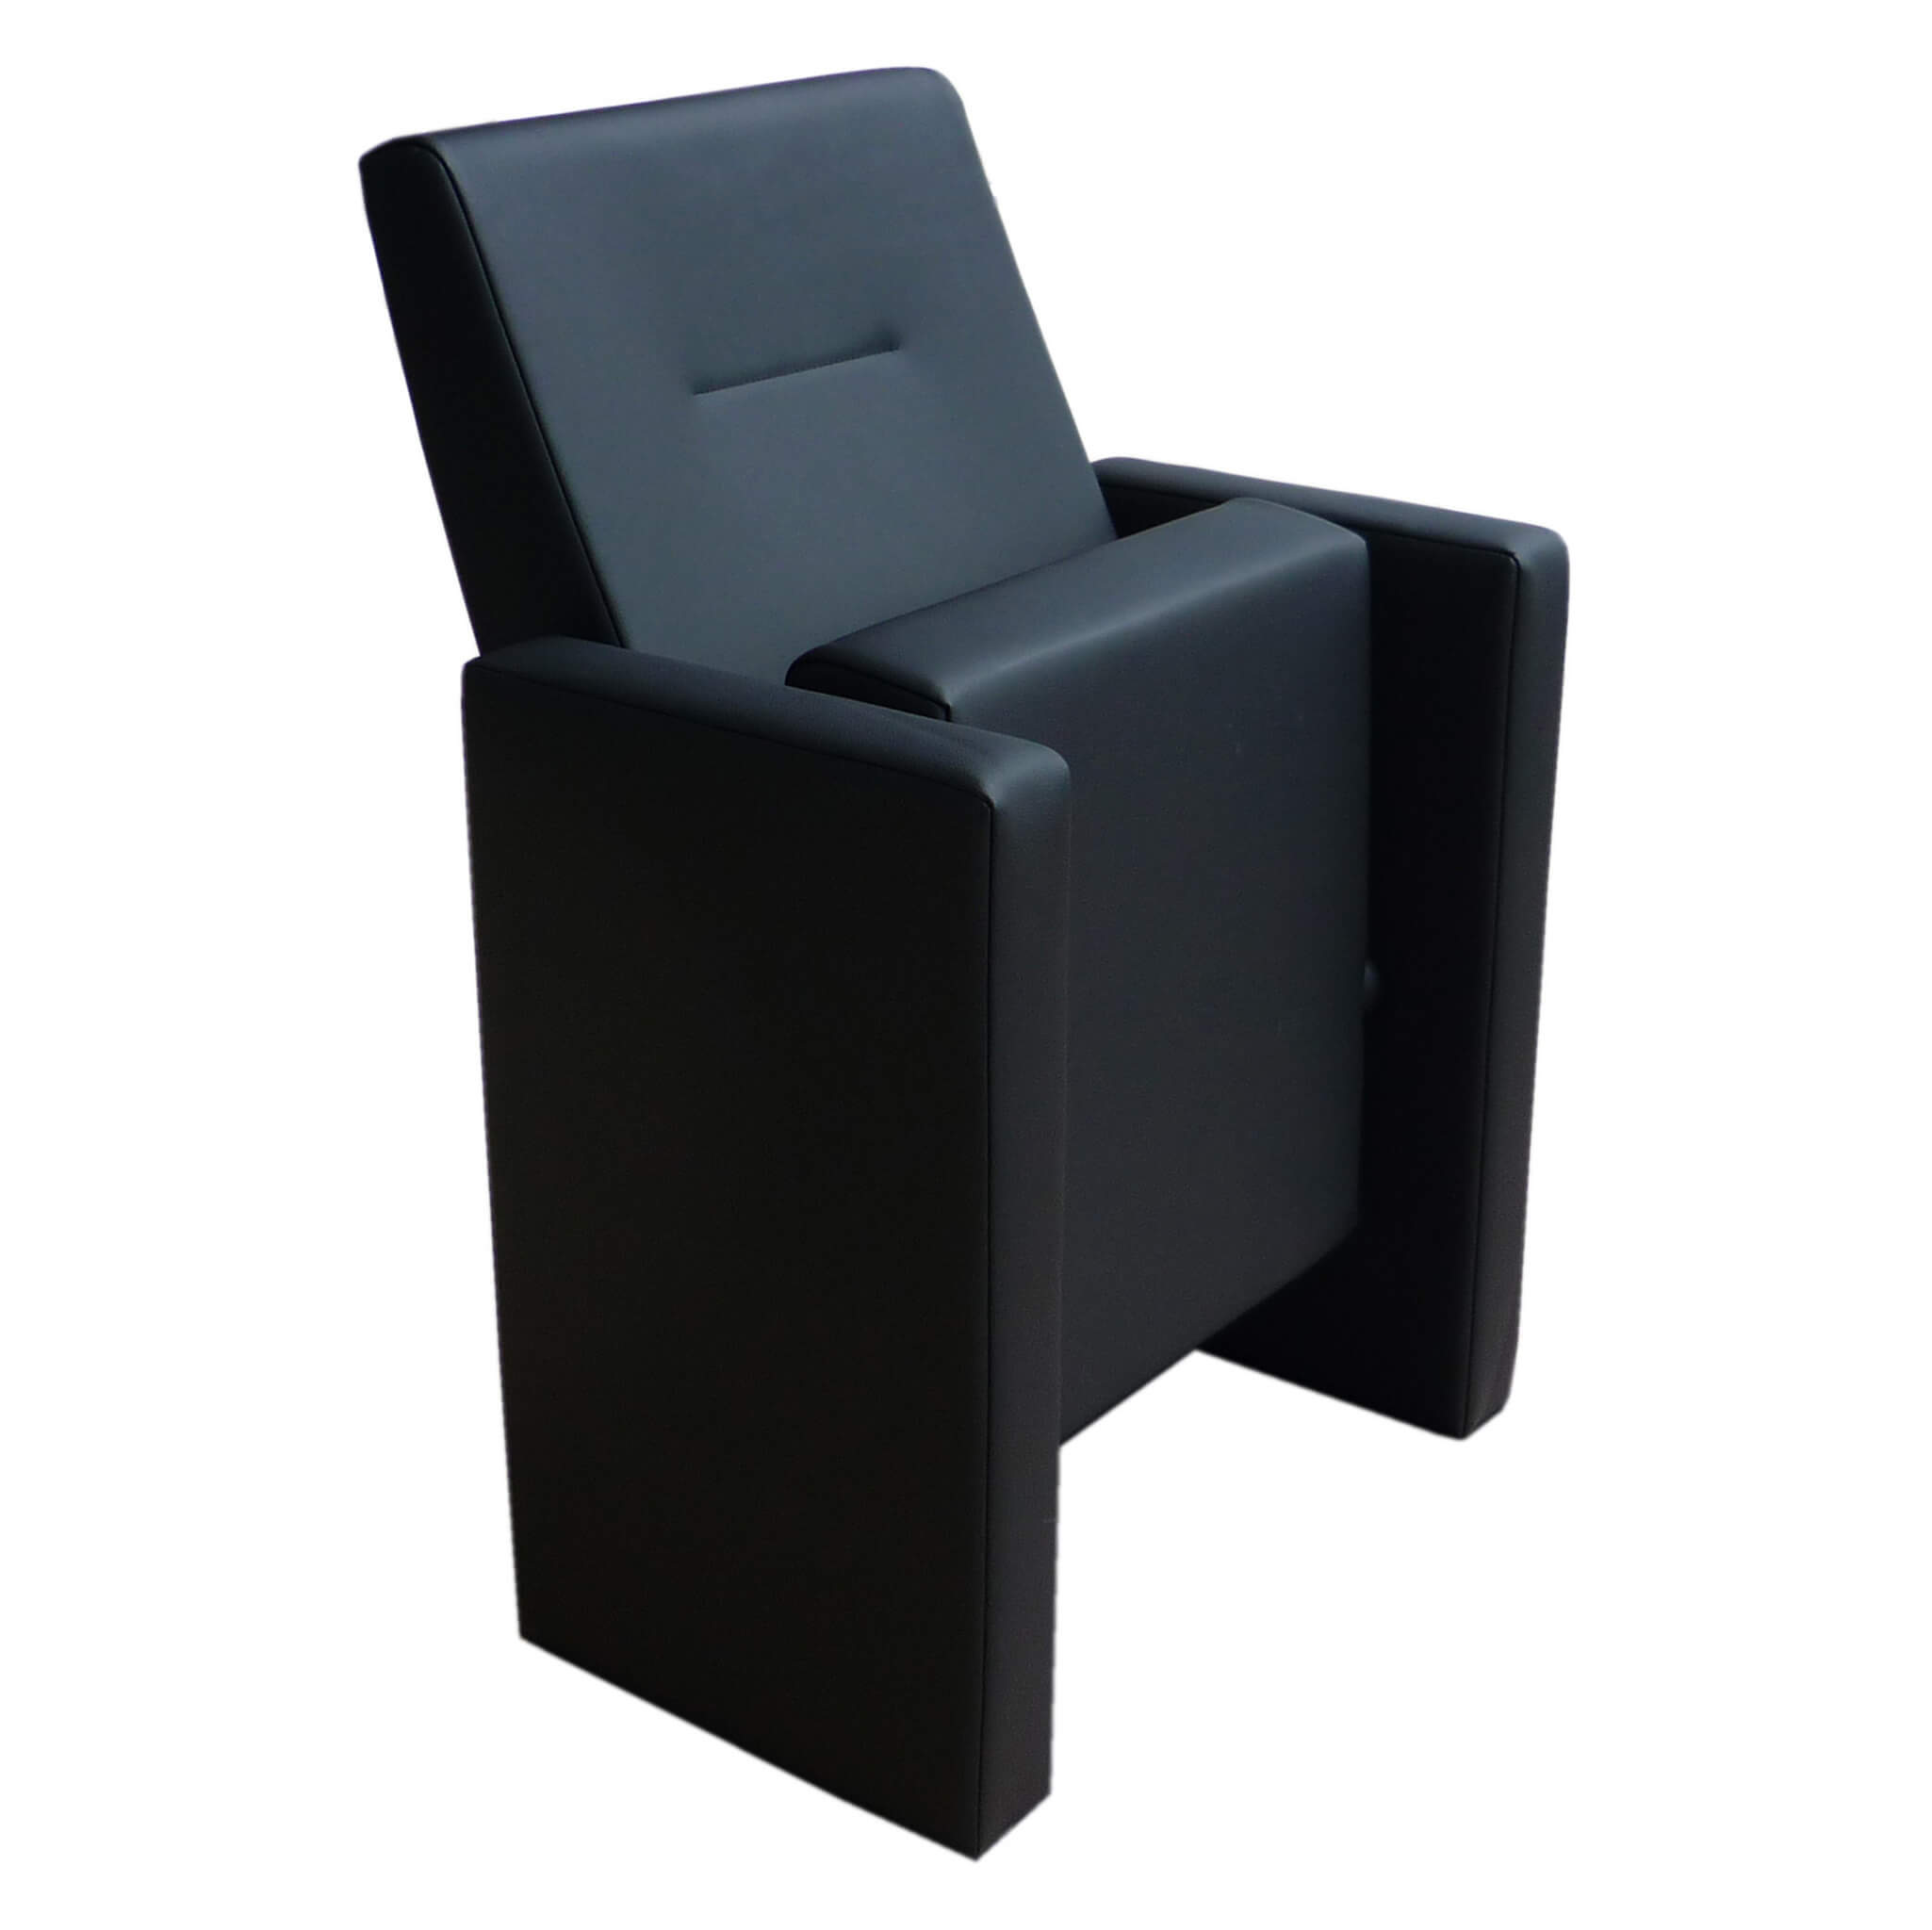 Akon Series - LINE Model - Auditorium, Theater Chair - Dimensions, Price